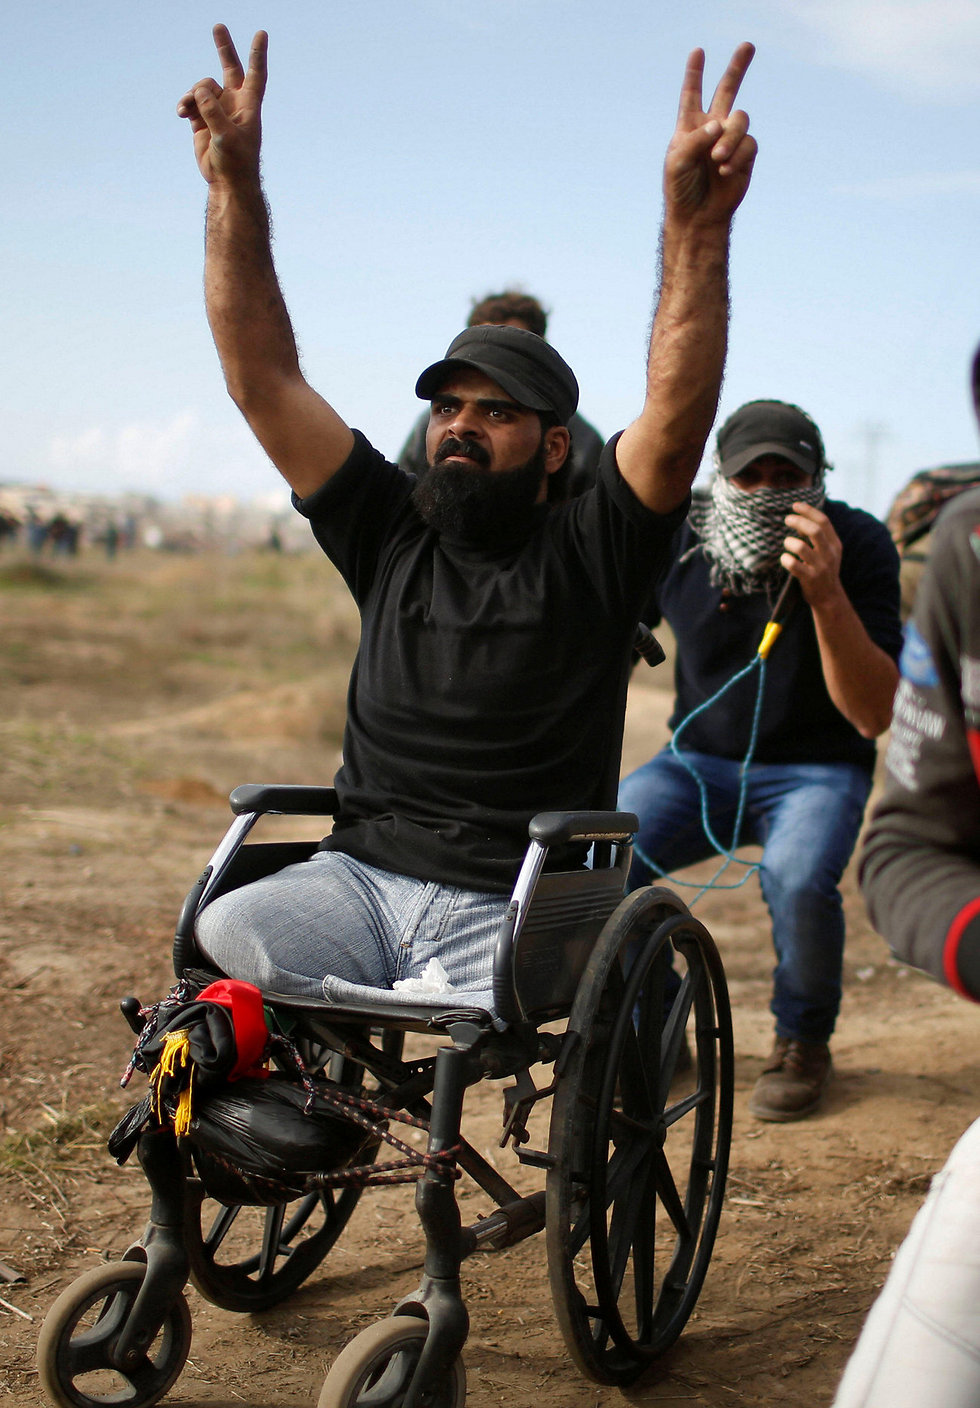 Abu Thuraya during the December 15 riots in Gaza (Photo: Reuters)